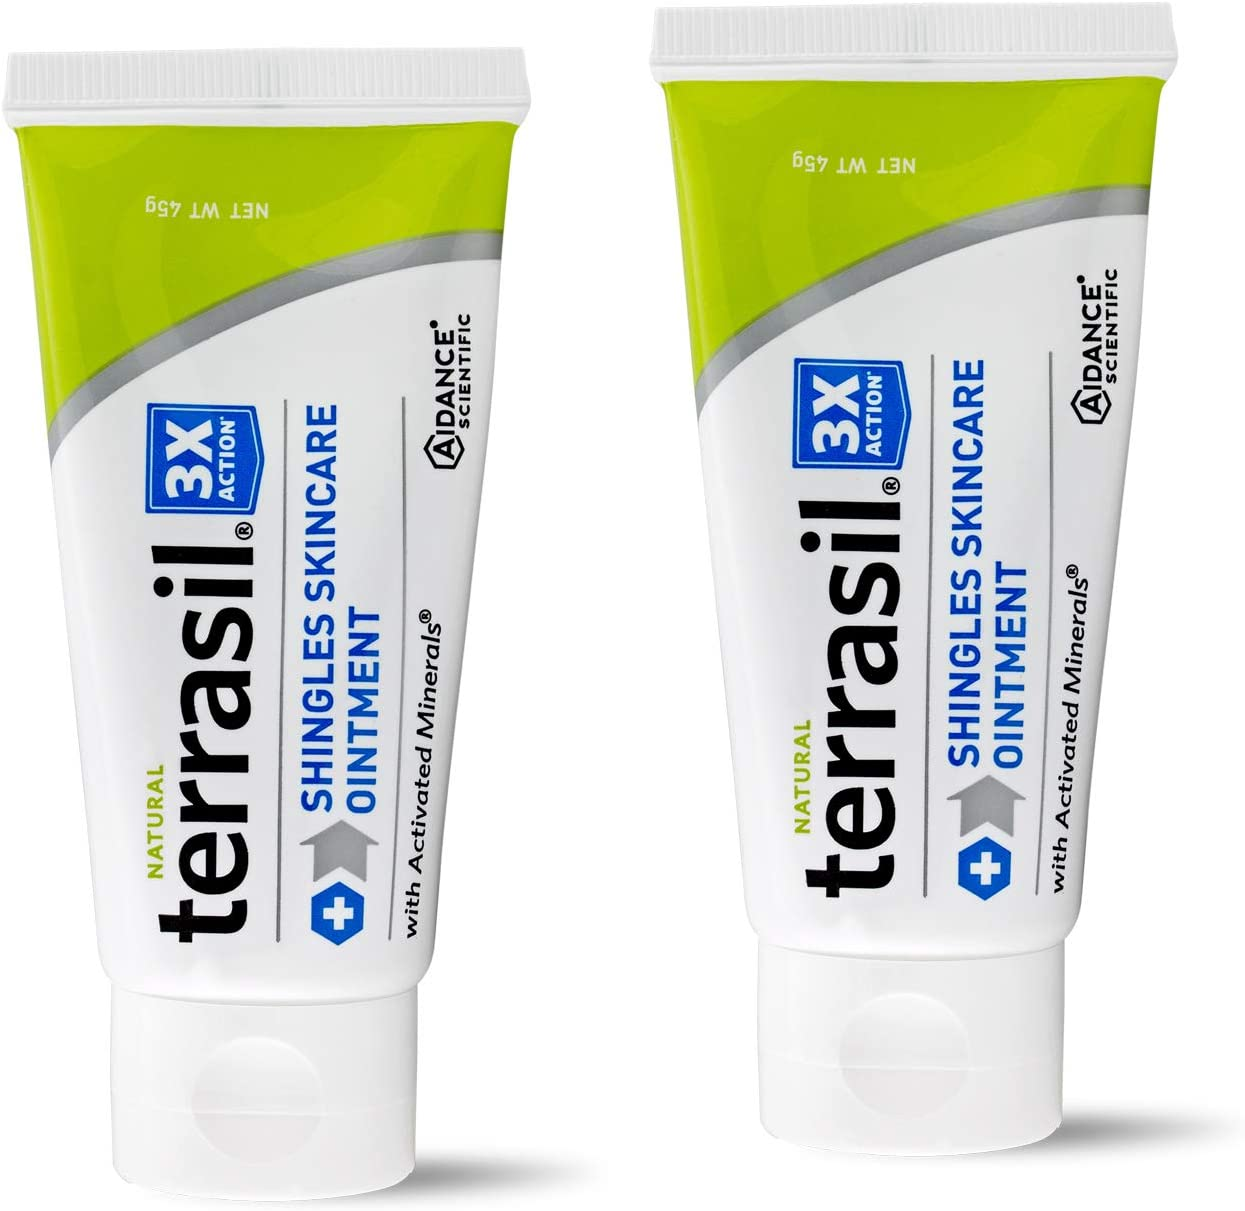 Shingles Treatment Cream - 3X Triple Action Patented Natural Formula for Herpes Zoster Outbreaks Causing Painful Rash and Nerve Pain by Terrasil - 45gm Tube 2-Pack